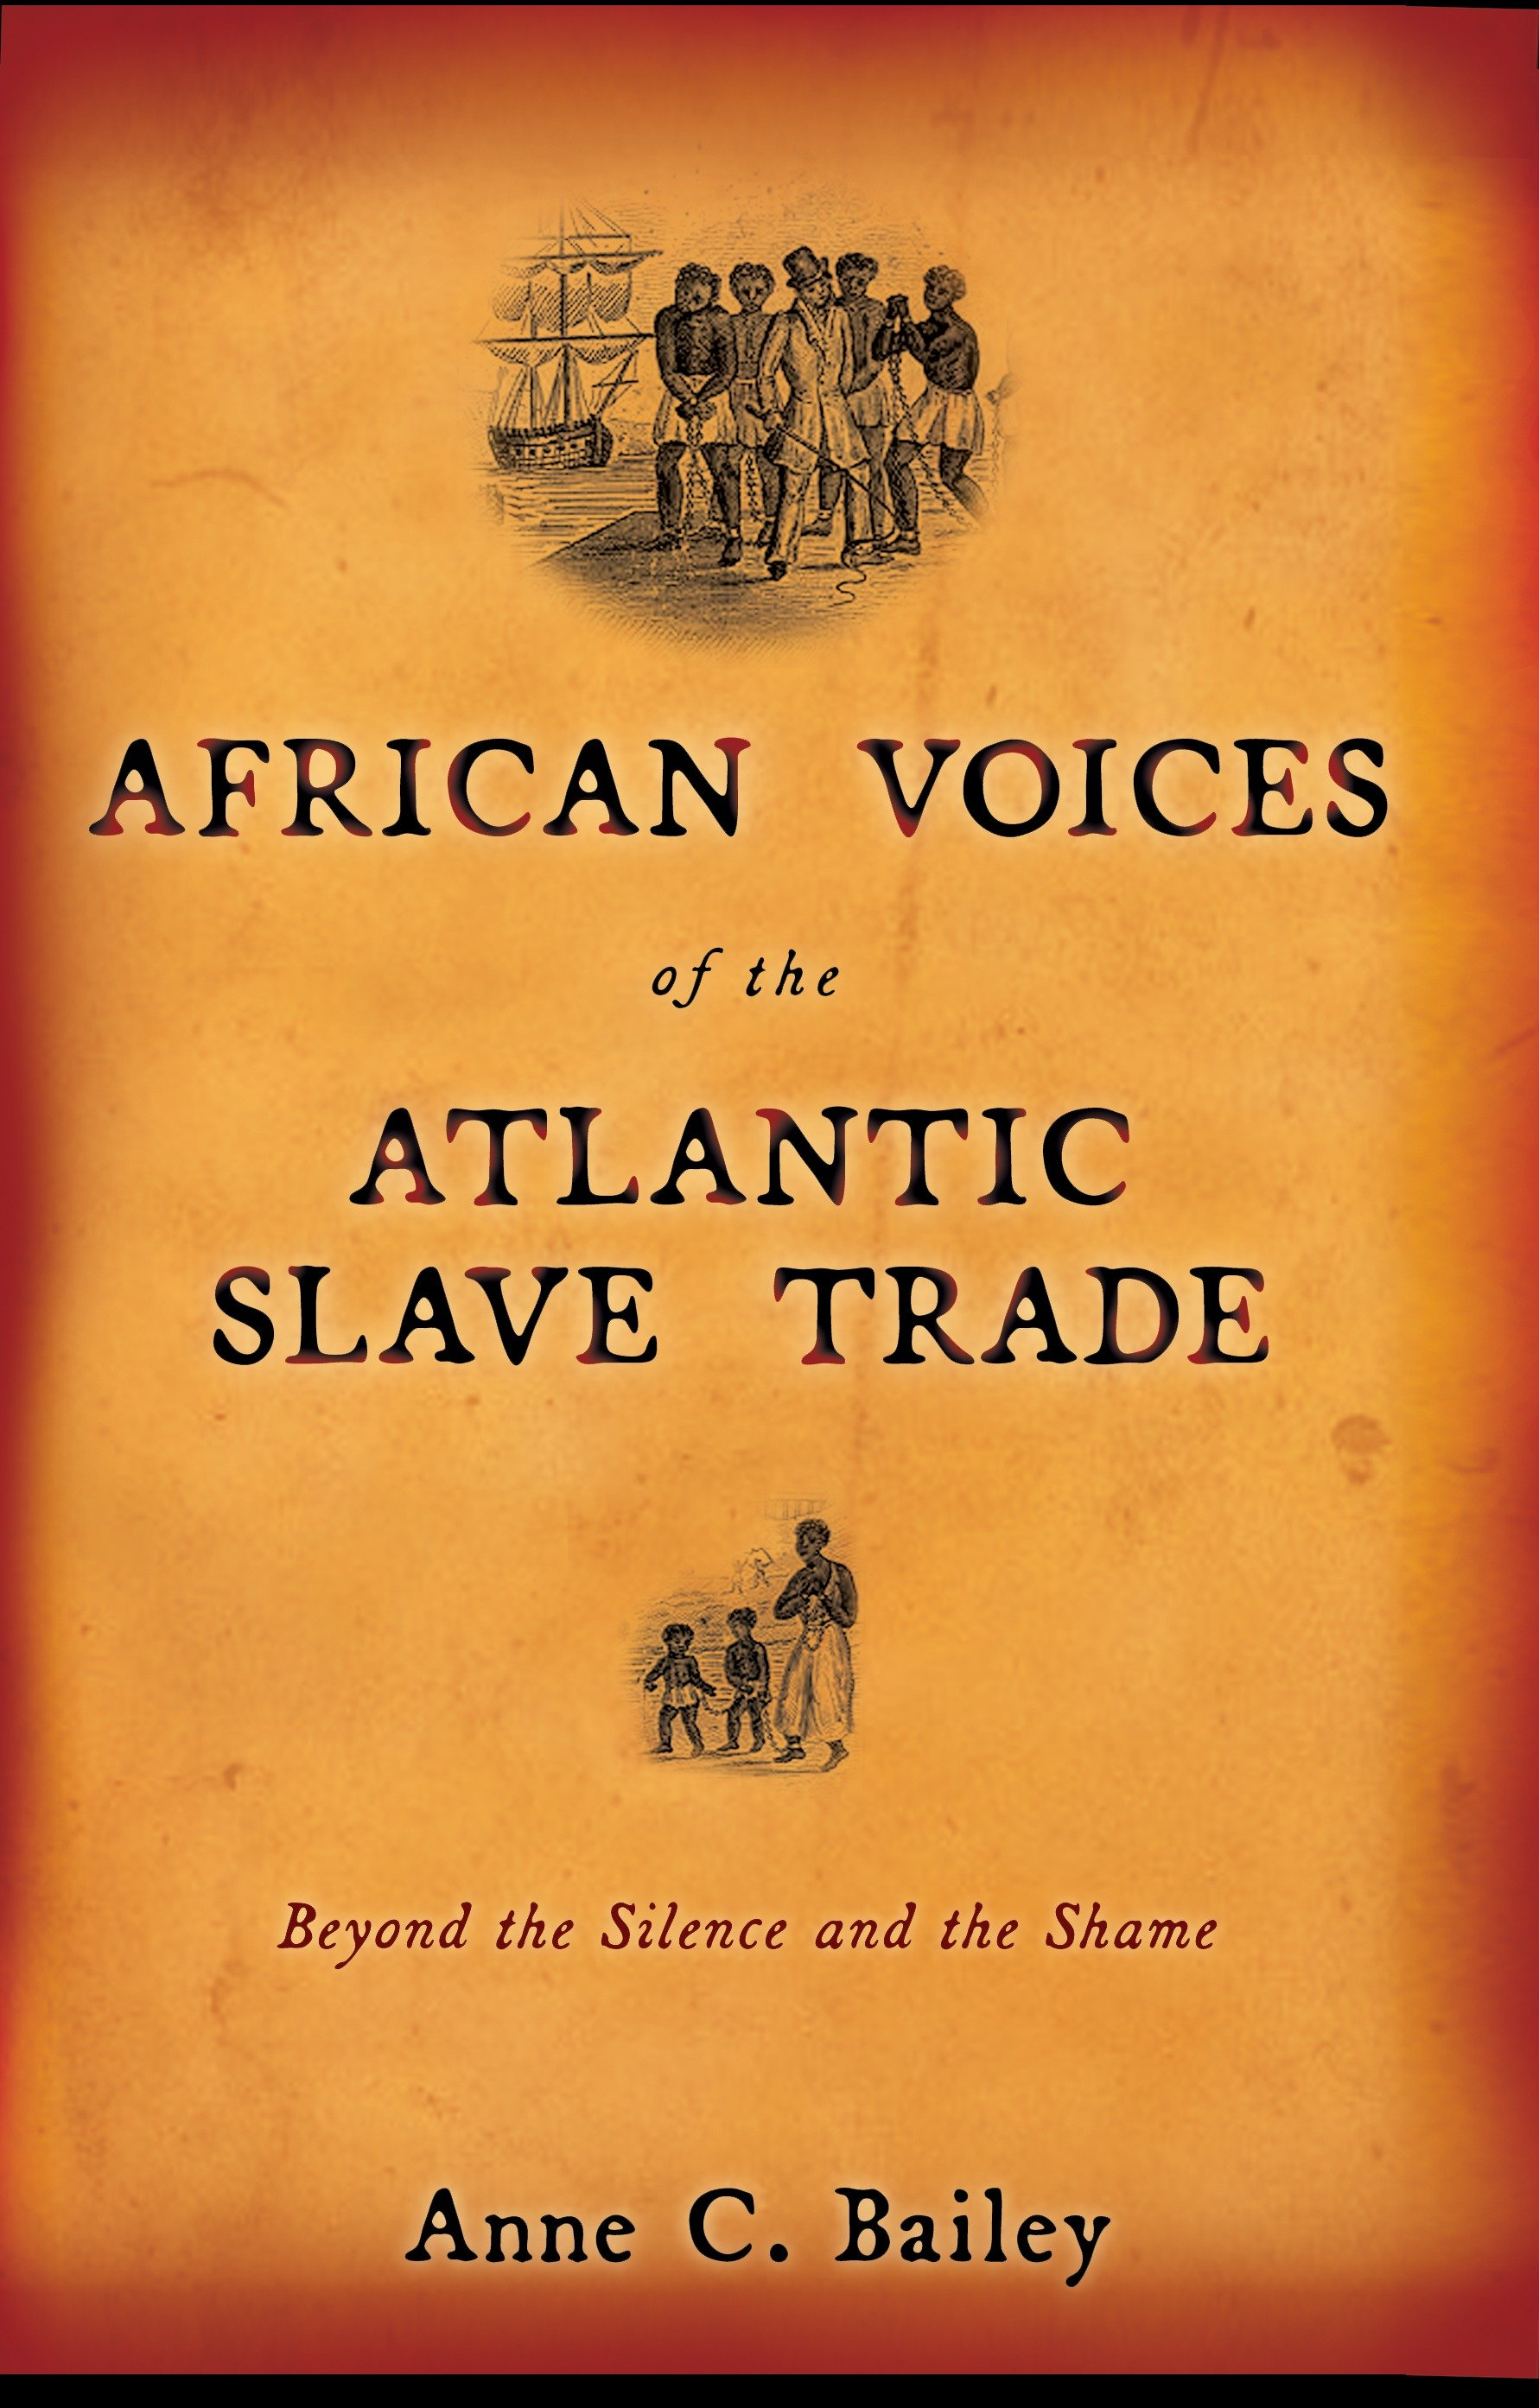 African Voices of the Atlantic Slave Trade Beyond the Silence and the Shame